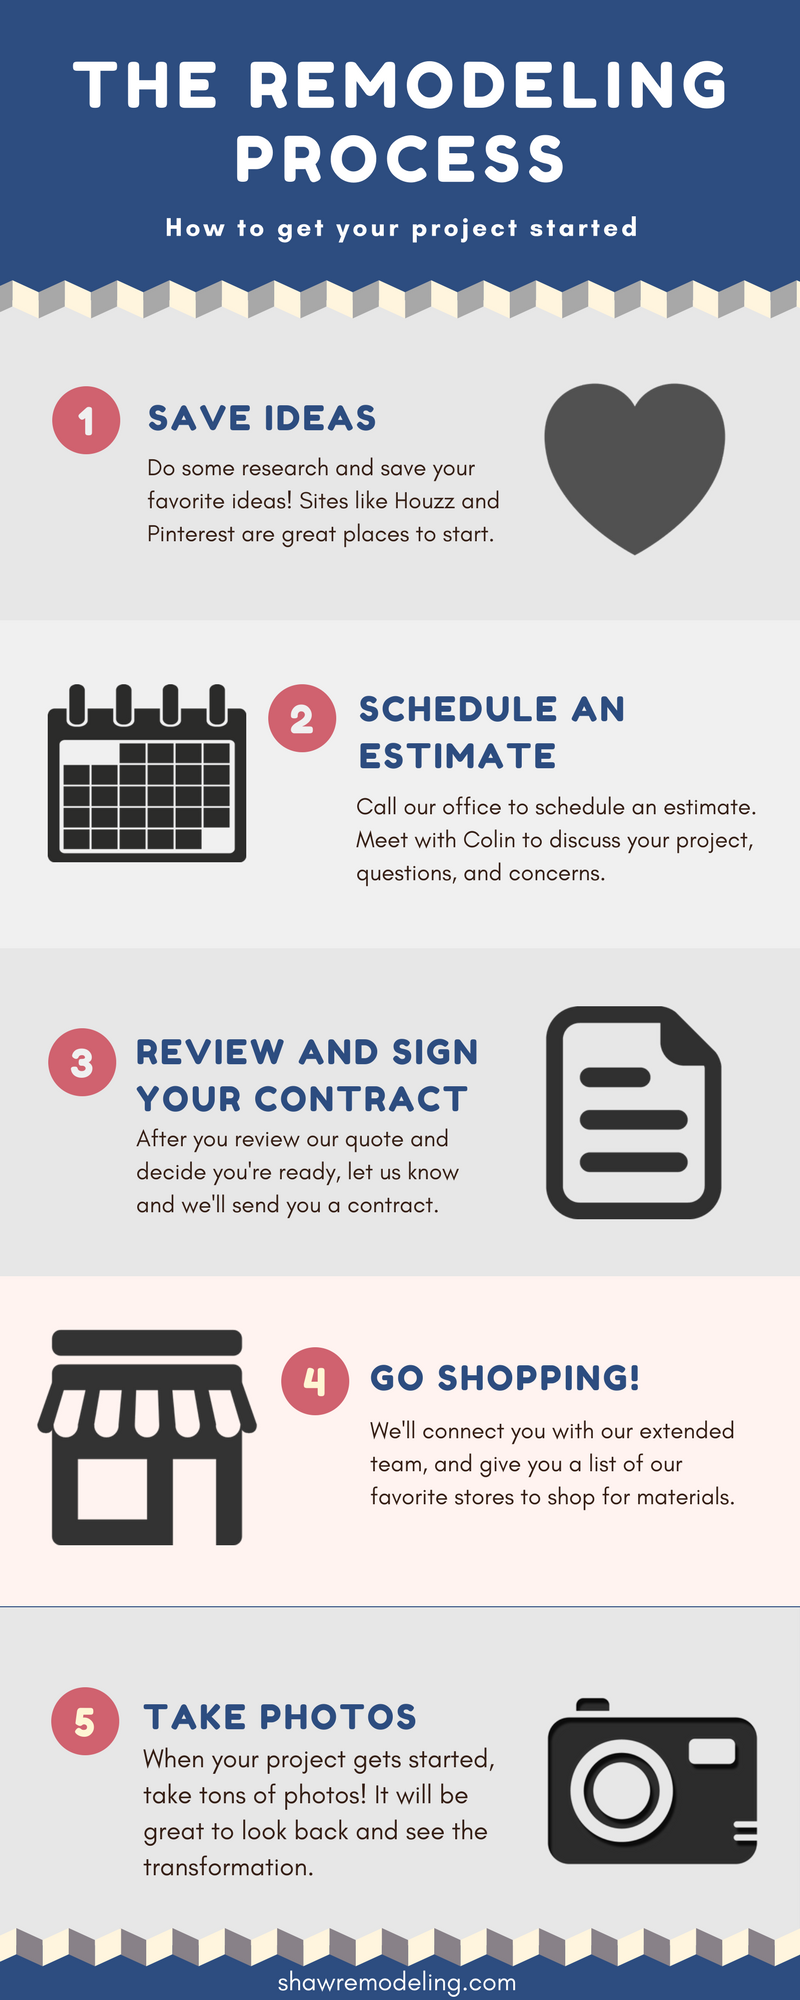 Shaw Remodeling - The Remodeling Process Infographic - On The Level Blog (2).png